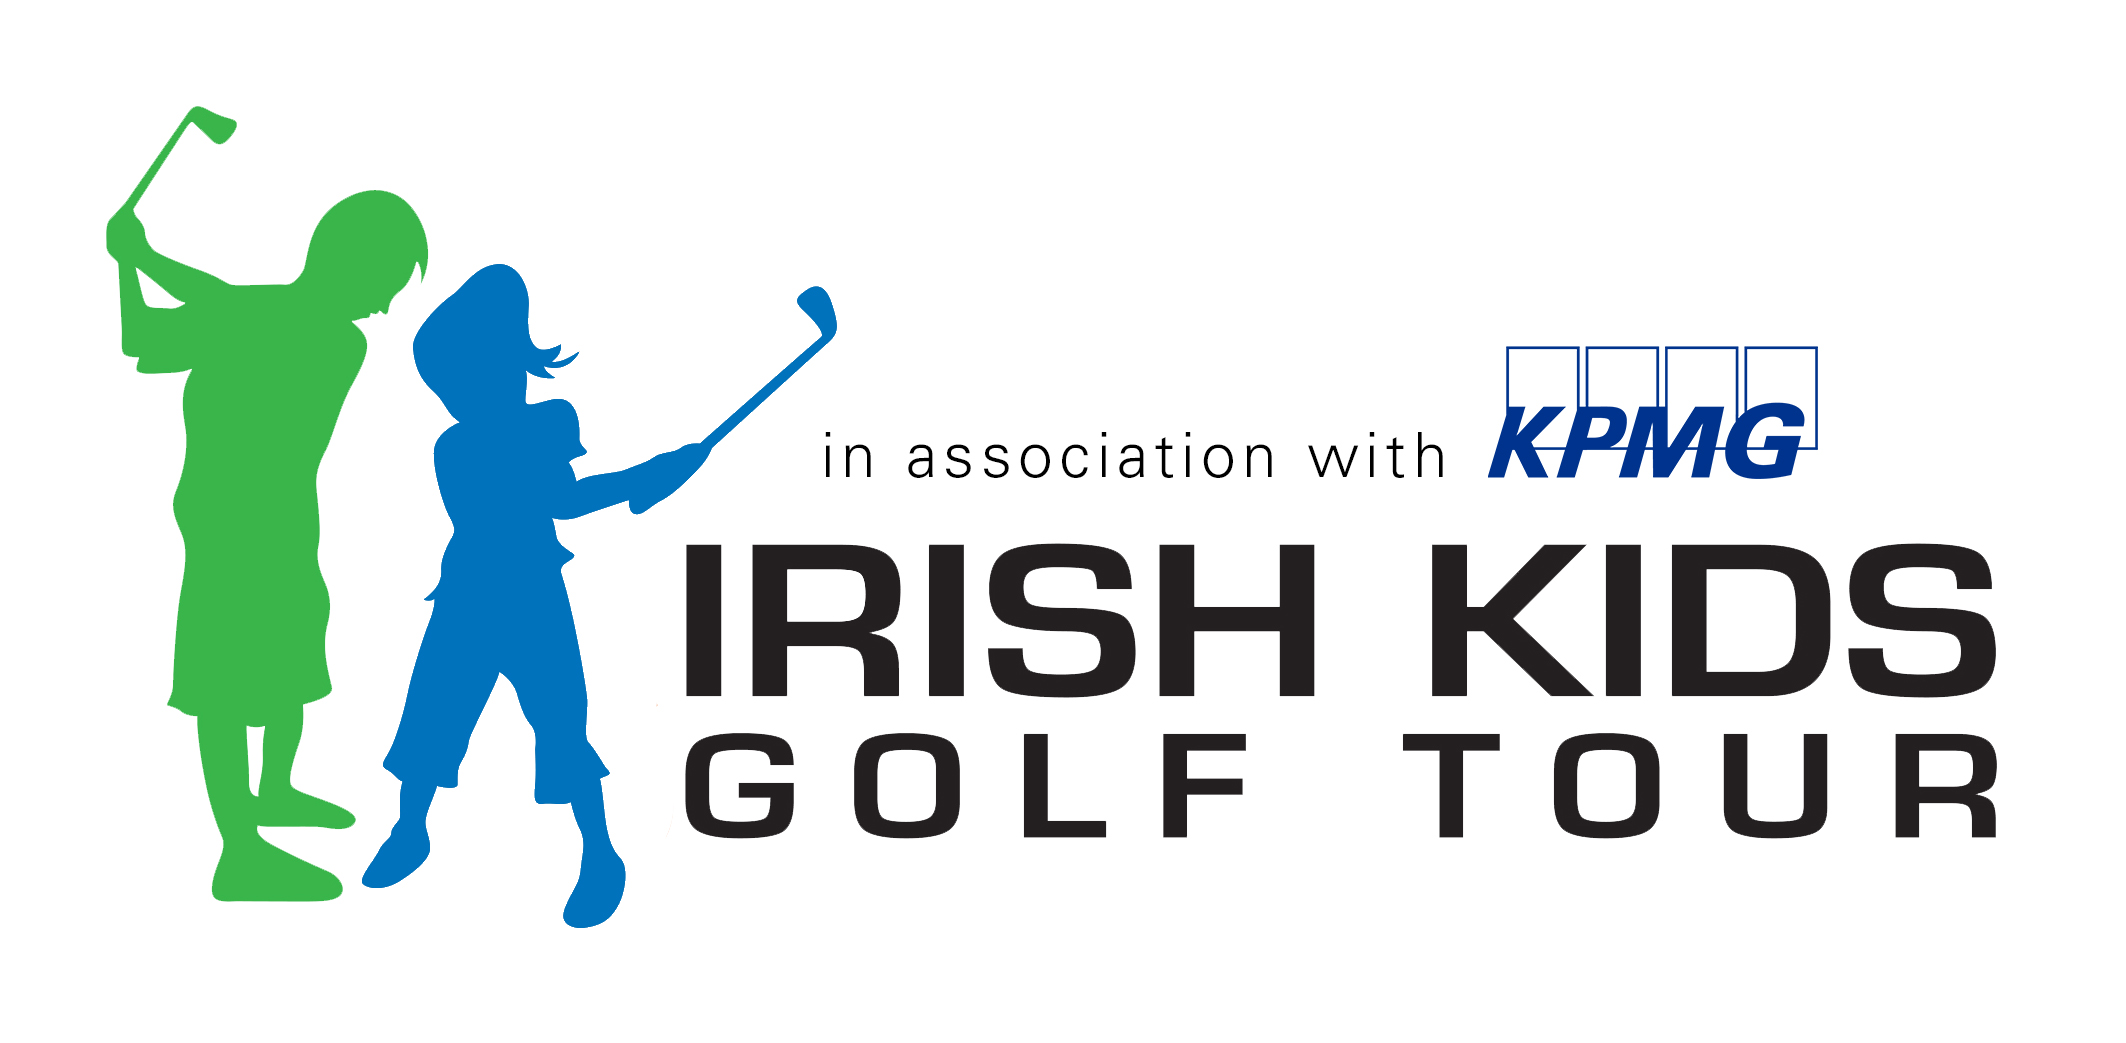 Irish Kids Golf Tour